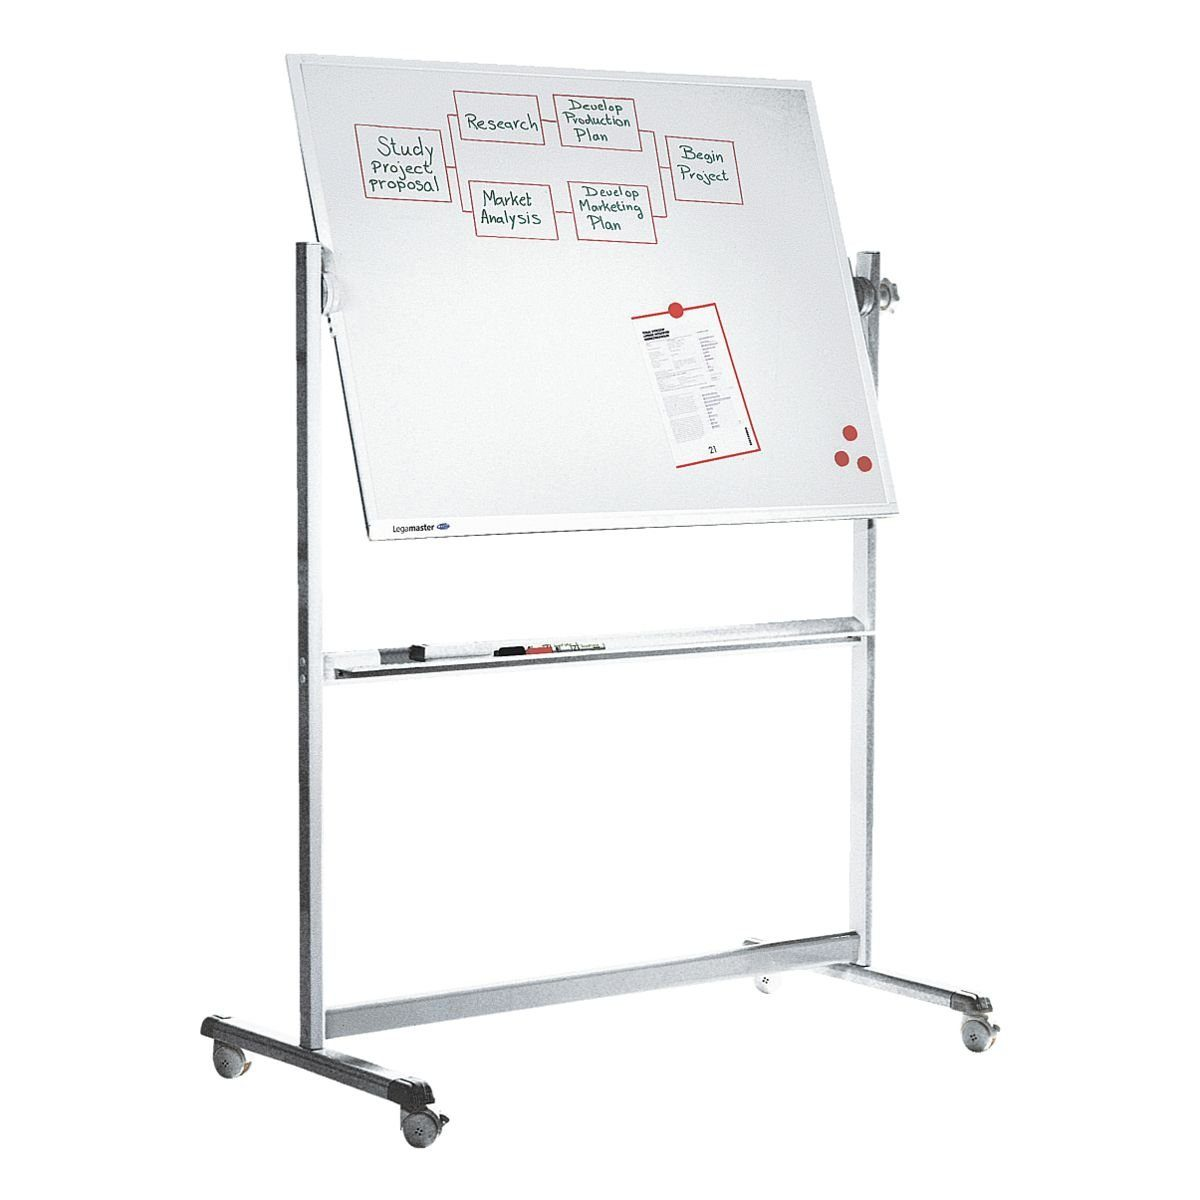 LEGAMASTER Whiteboard 7-100454 emailliert, 120 x 90 cm »Professional«